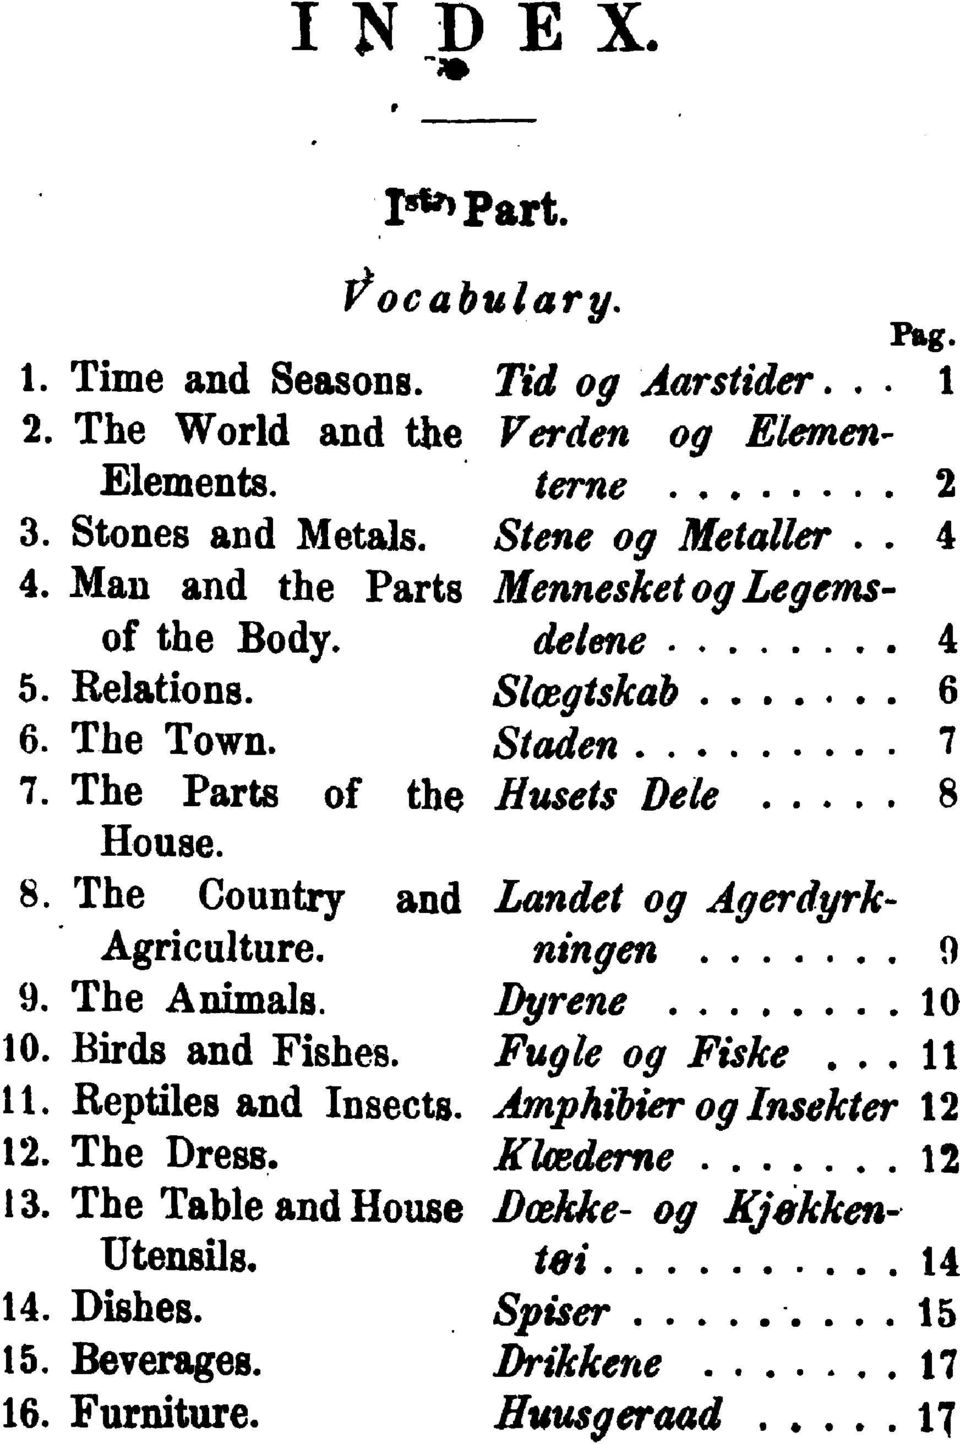 The Coutry ad Ladet og Agerdyrk- Agriculture. ig 9 9. The Aimals. Dyre 10 10. Birds ad Fishes. Fugle og Fiske... 11 11. Reptiles ad Isects.